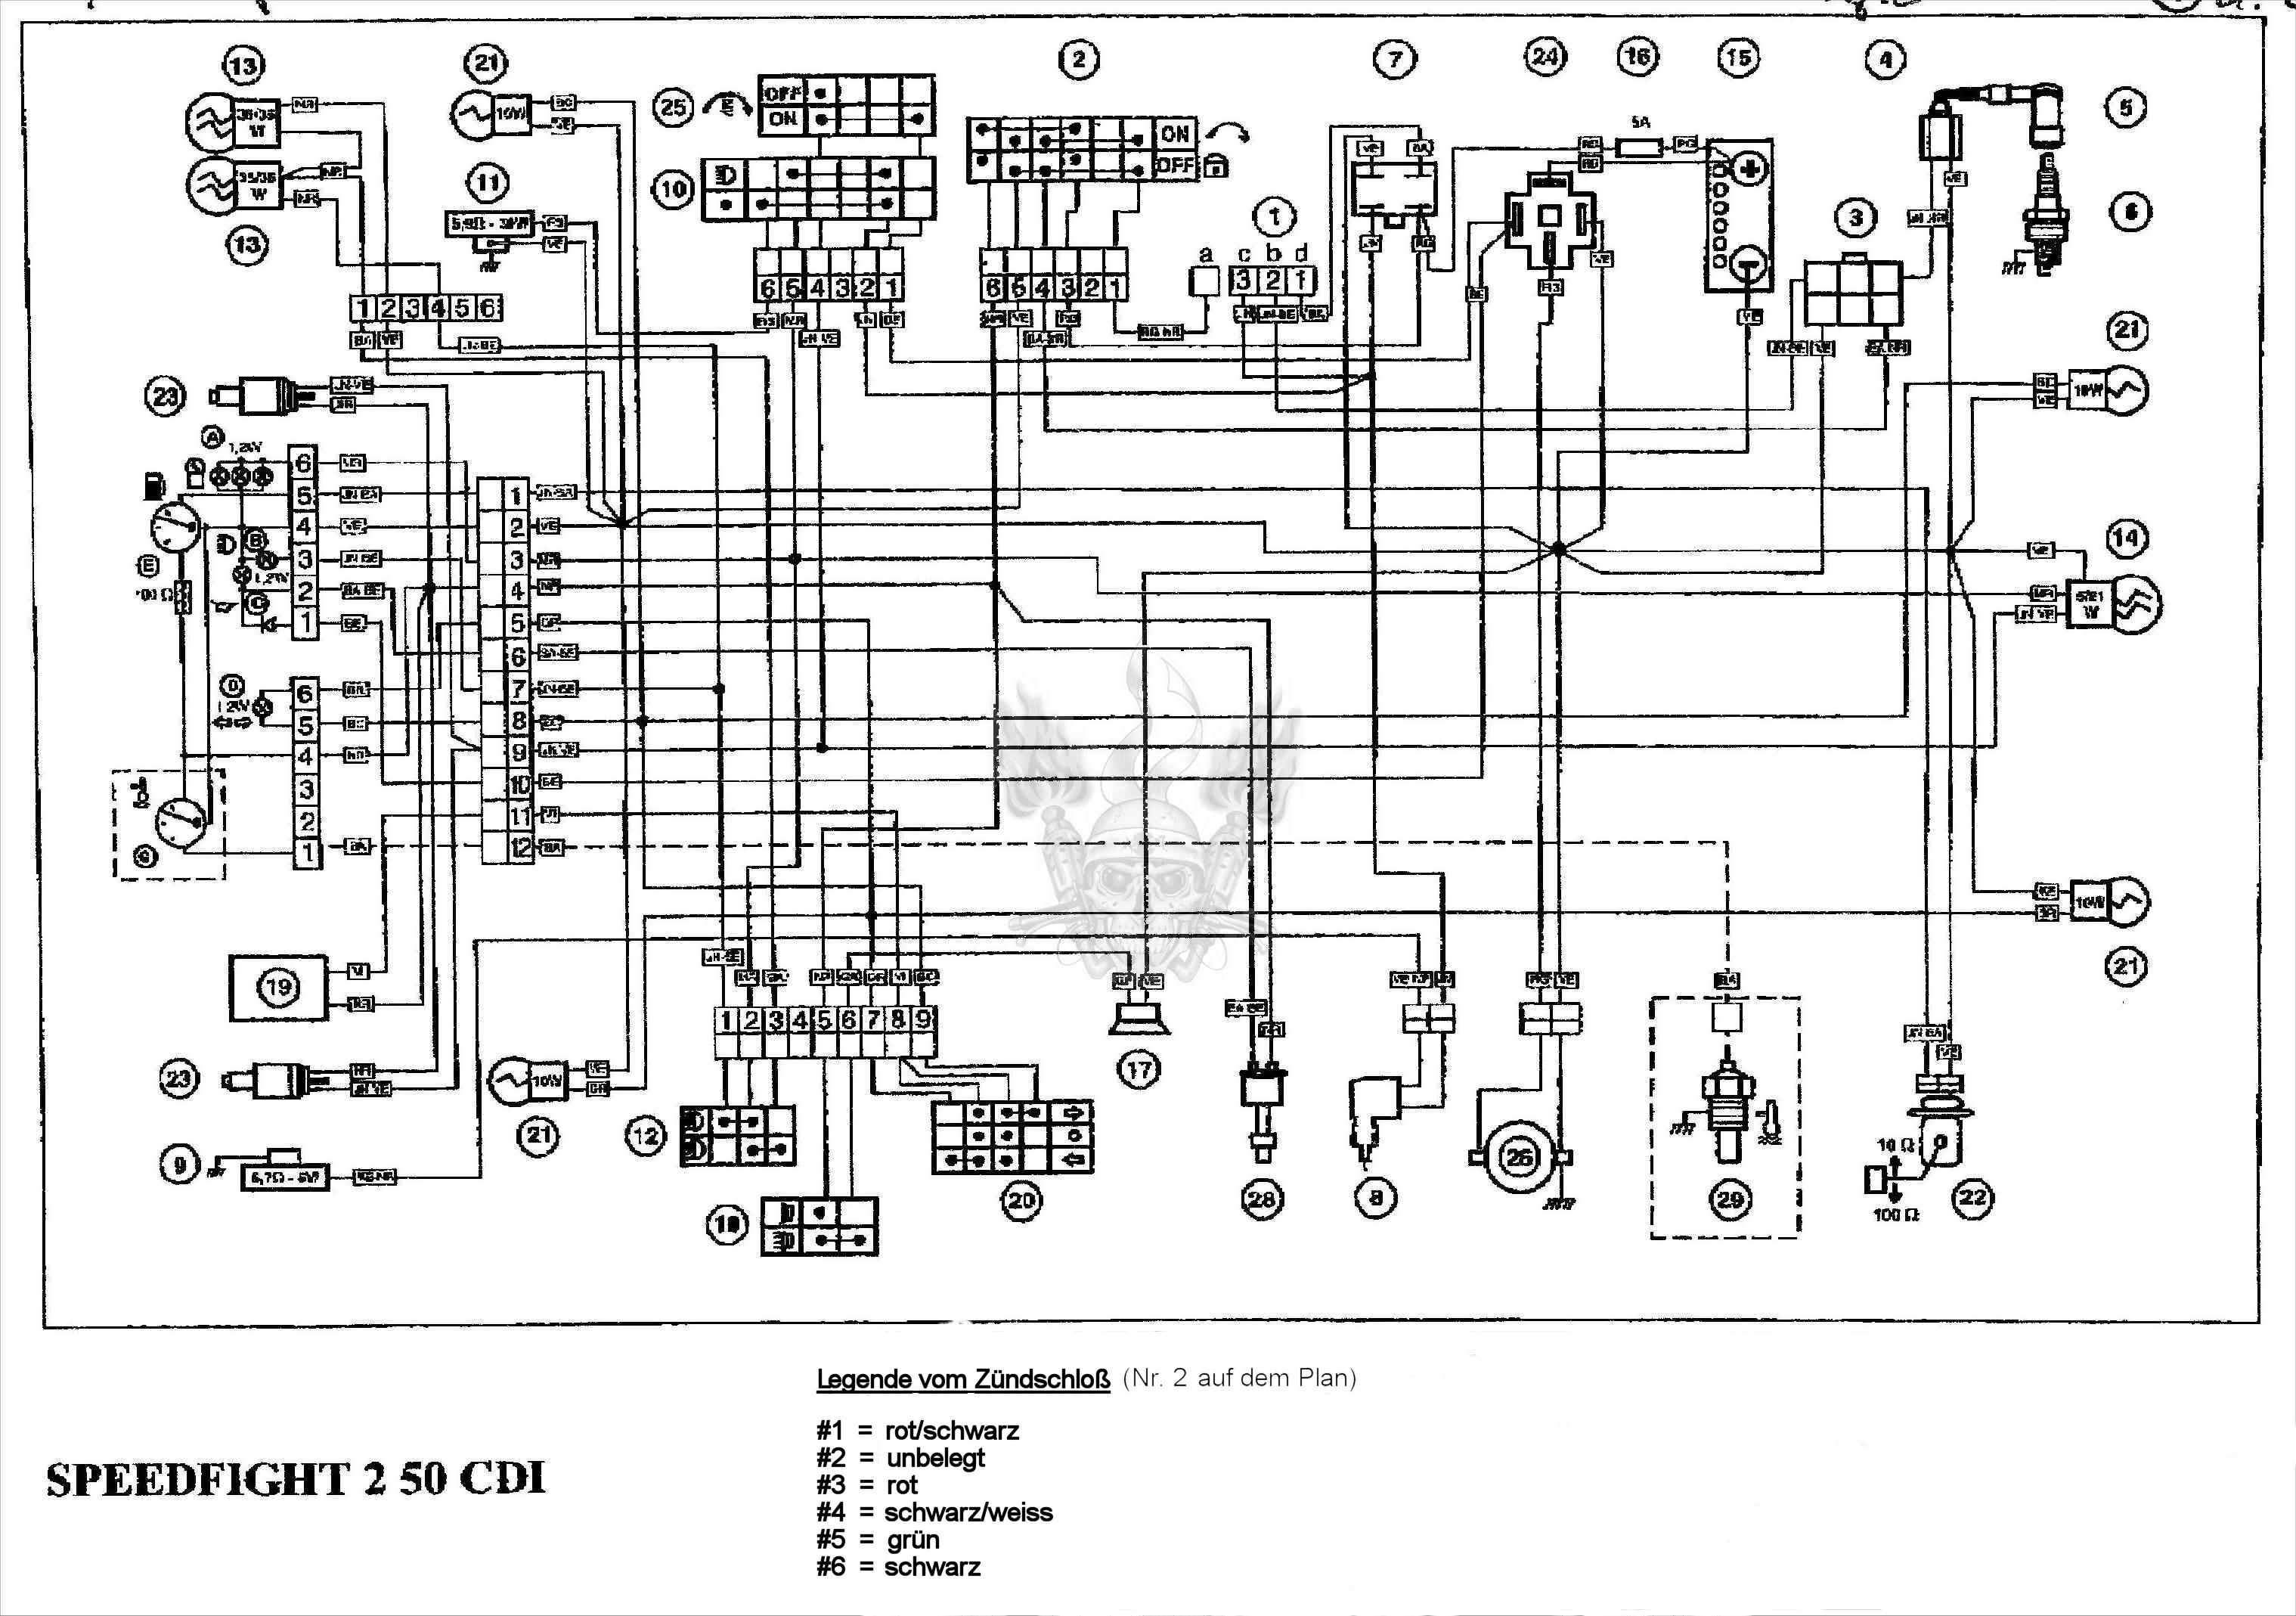 Cd Rom Schematic Diagram additionally Need Help With 90vdc Pm Motor Speed Control Circuit in addition 74 series digital circuit with 74LS139 74S139 2 4 line decoder multi channel converter as well Swisher Pull Behind Mower Wiring Diagram furthermore Document. on controller wiring diagram